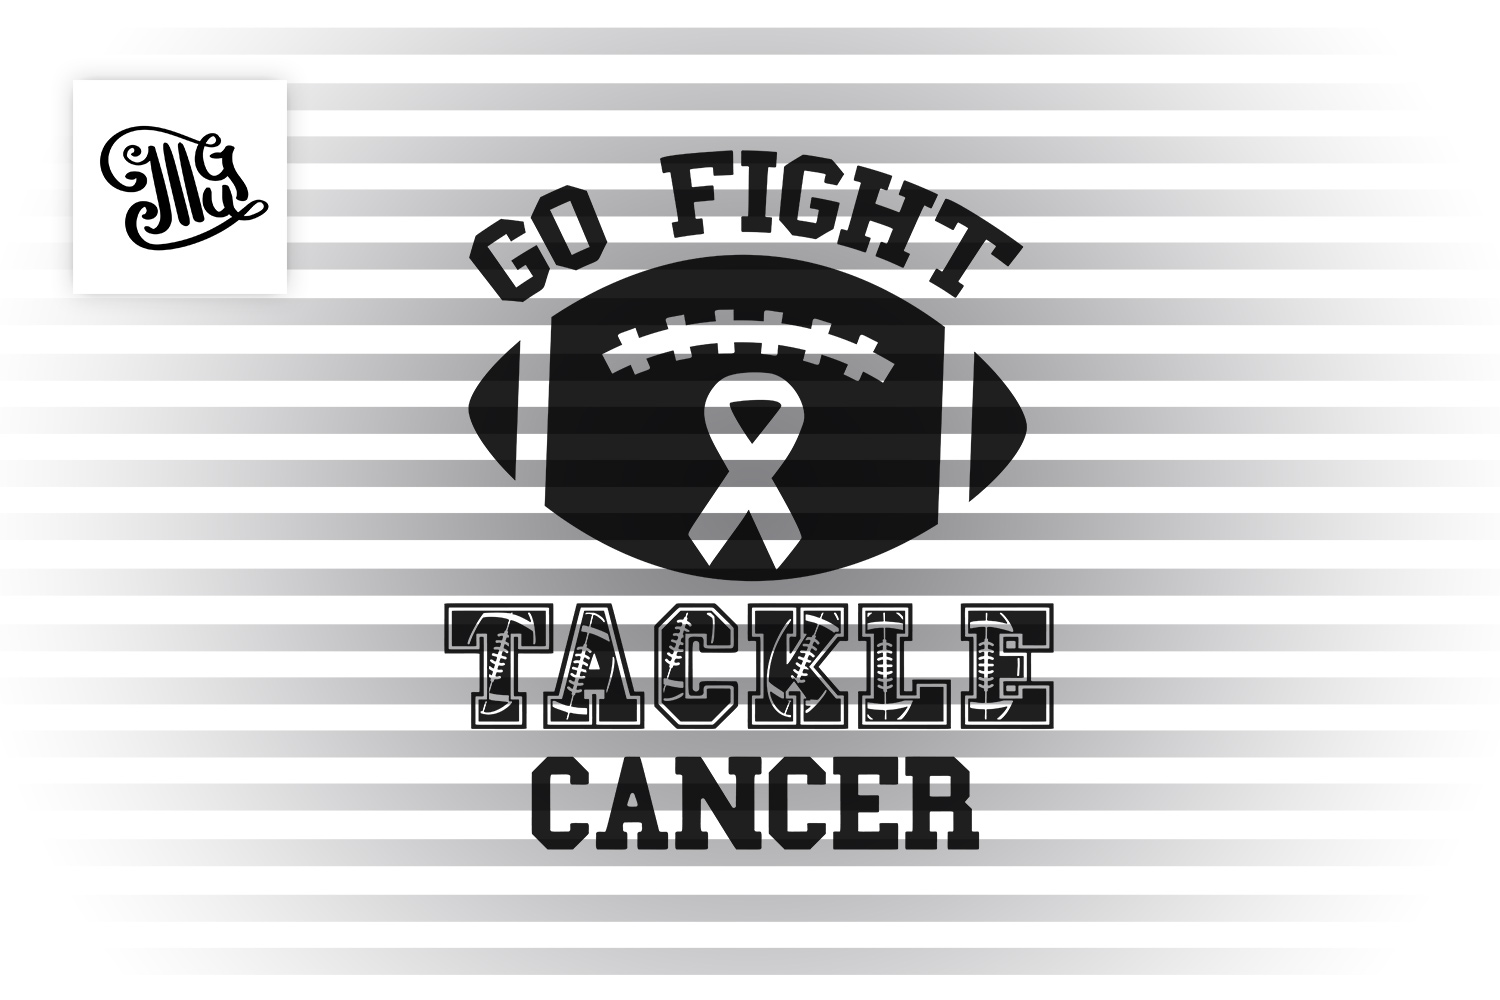 Go fight tackle cancer example image 2